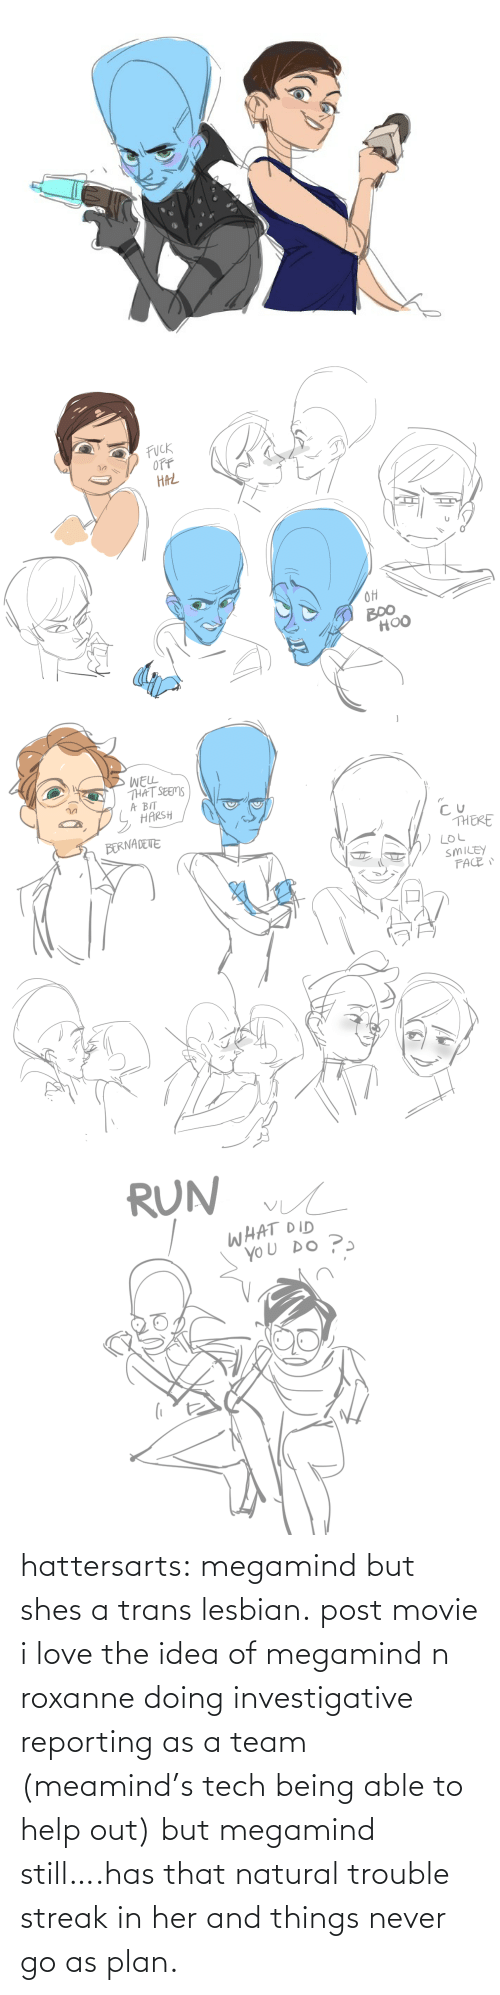 Love, Tumblr, and Blog: hattersarts:  megamind but shes a trans lesbian.  post movie i love the idea of megamind n roxanne doing investigative reporting as a team (meamind's tech being able to help out) but megamind still….has that natural trouble streak in her and things never go as plan.